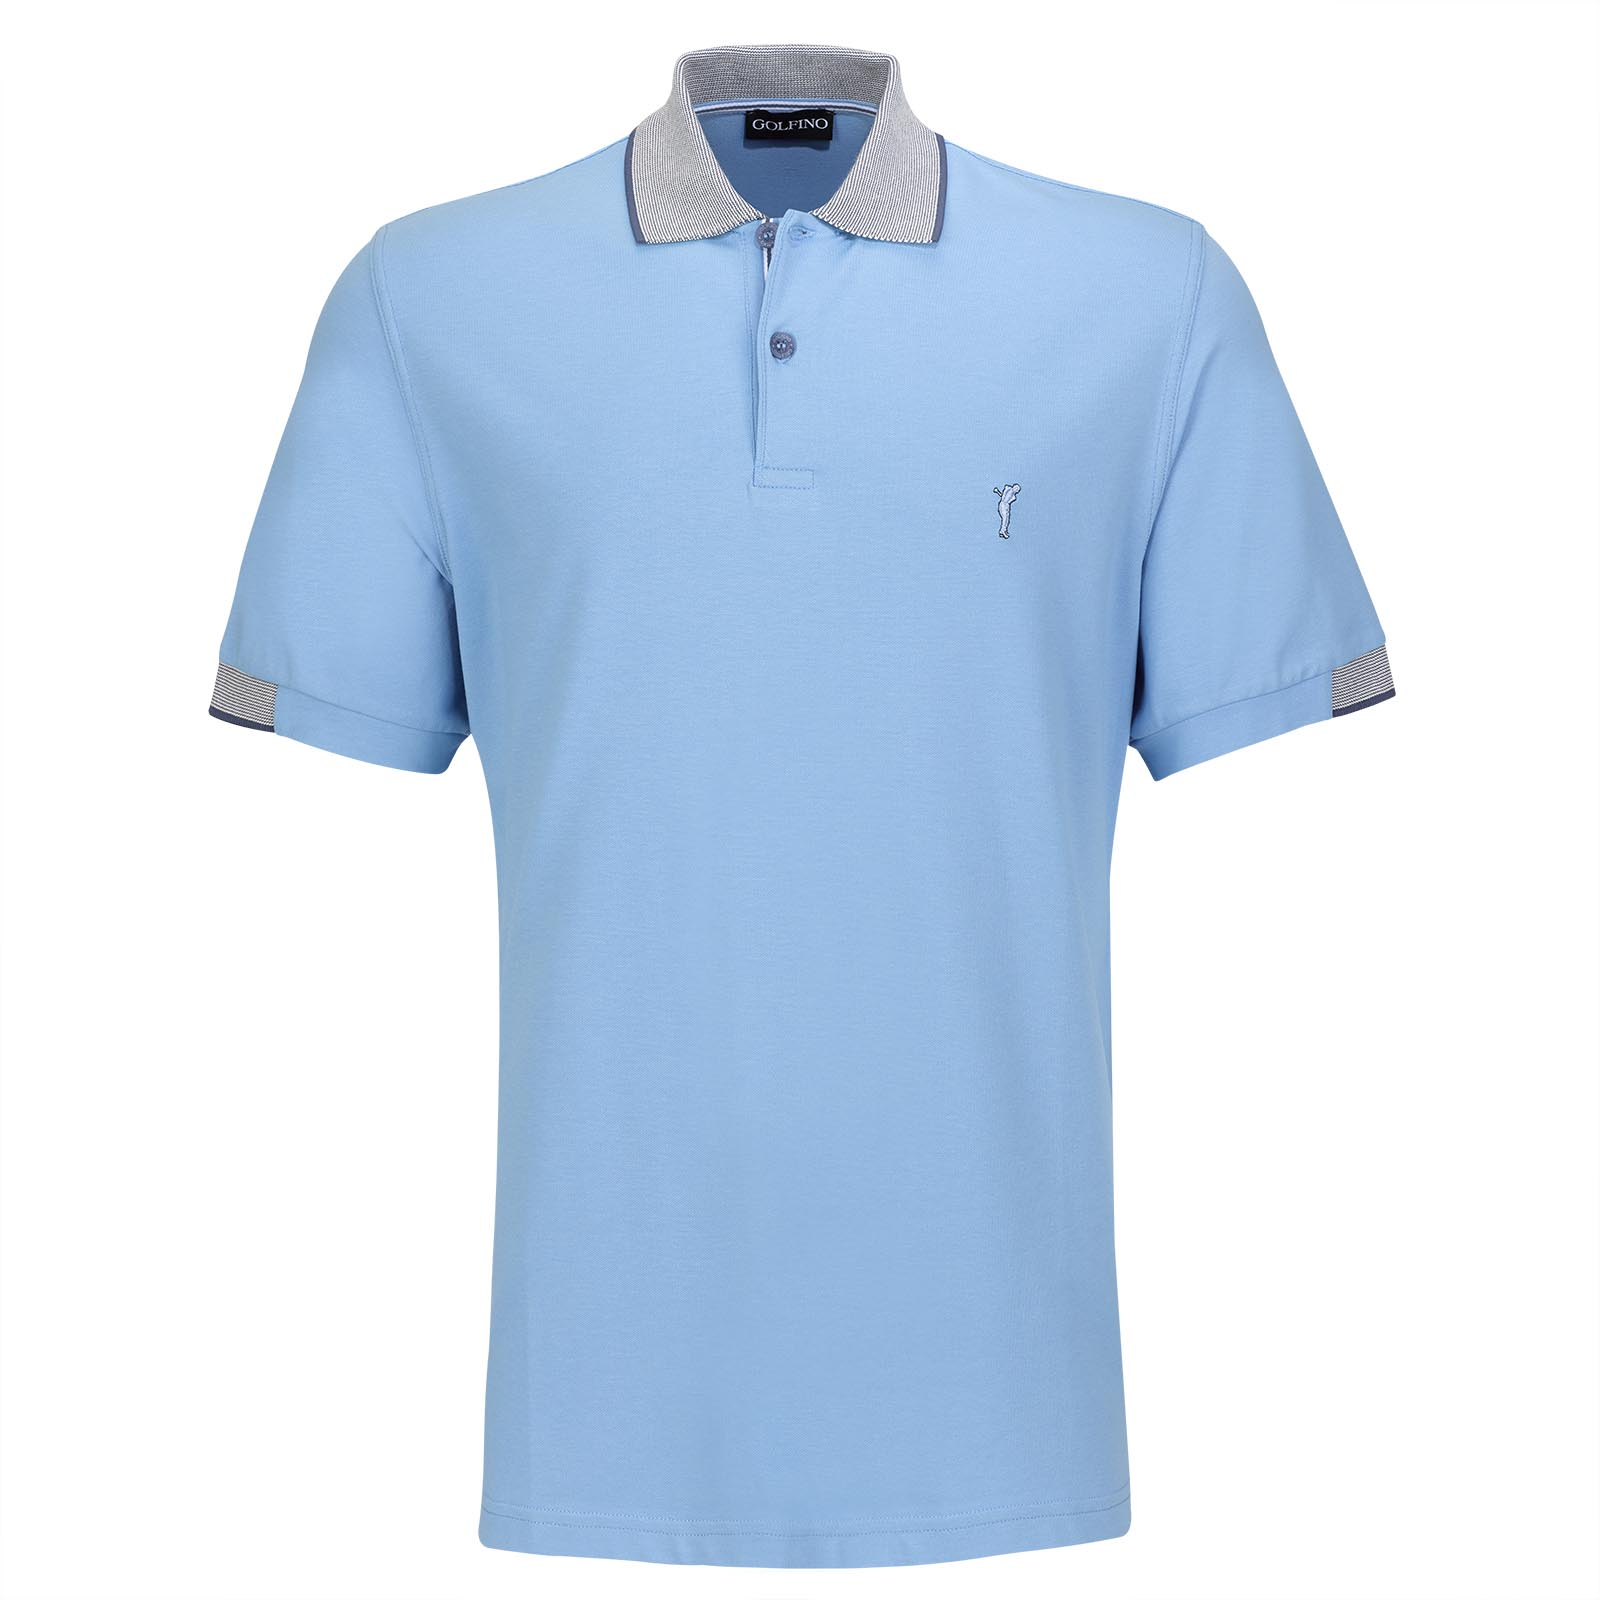 Sommerliches Herren Sunprotection-Golfpolo Resort Wear